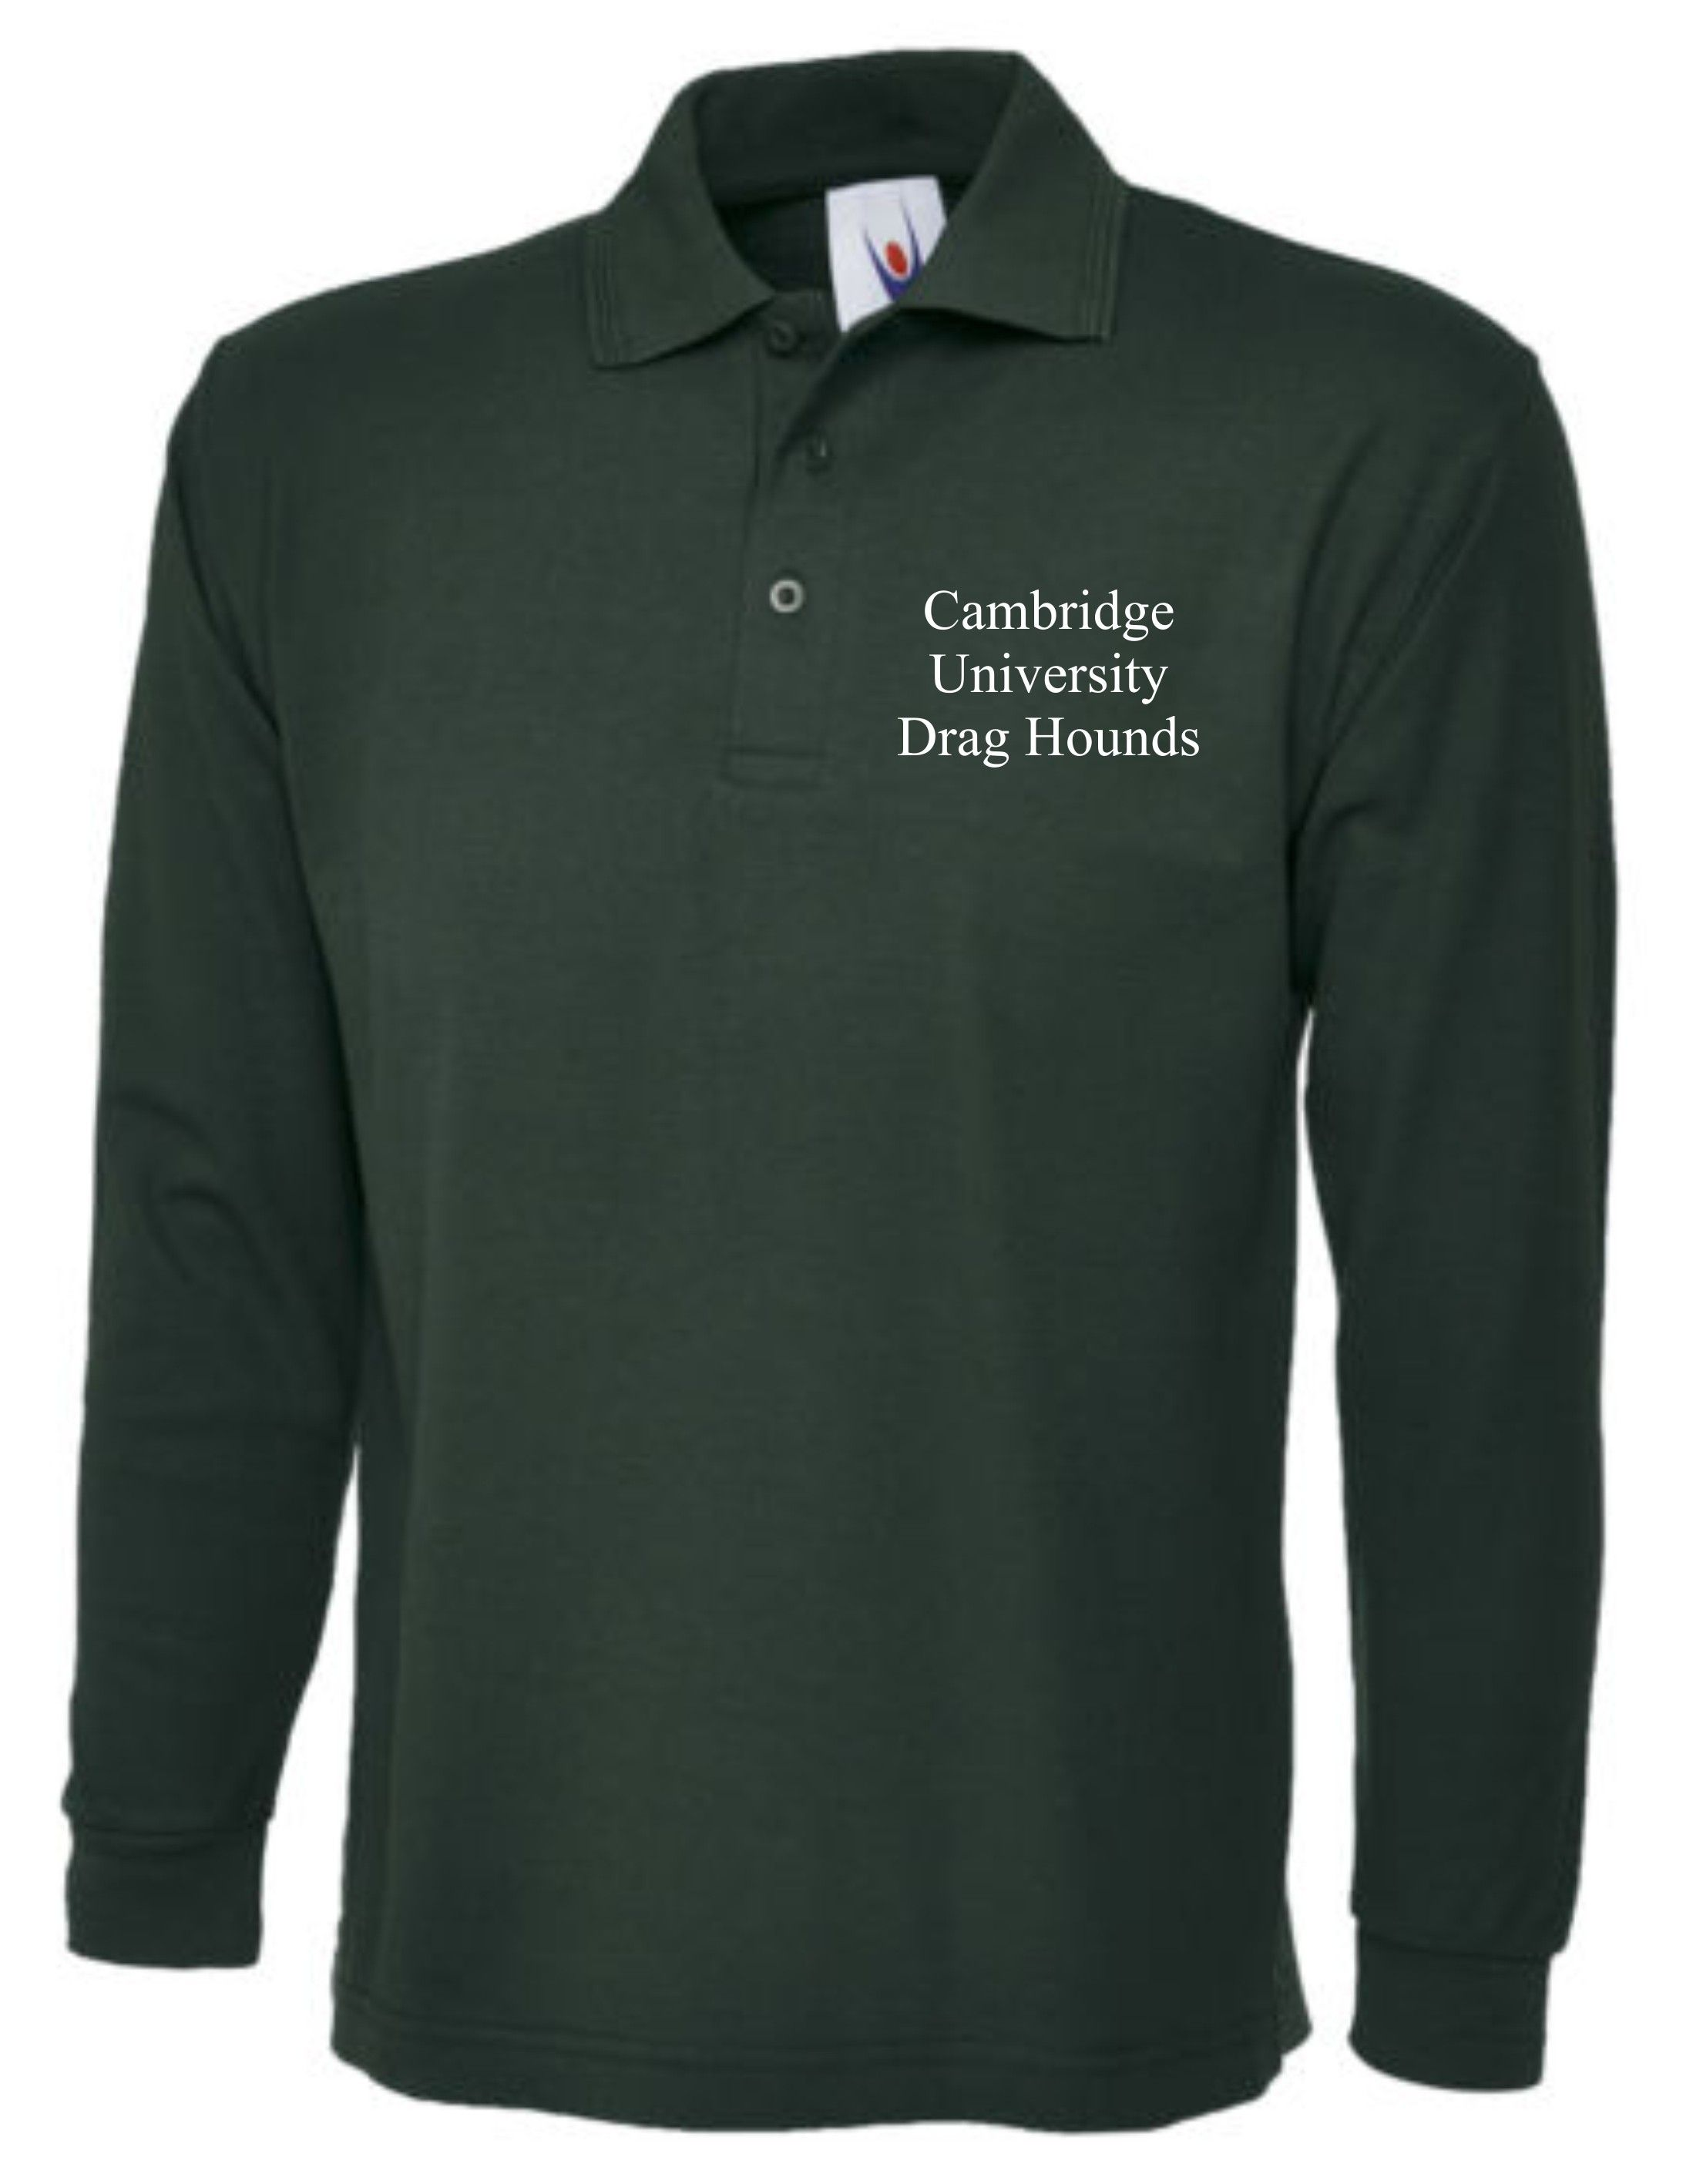 CUDH – Long Sleeve Polo Shirt